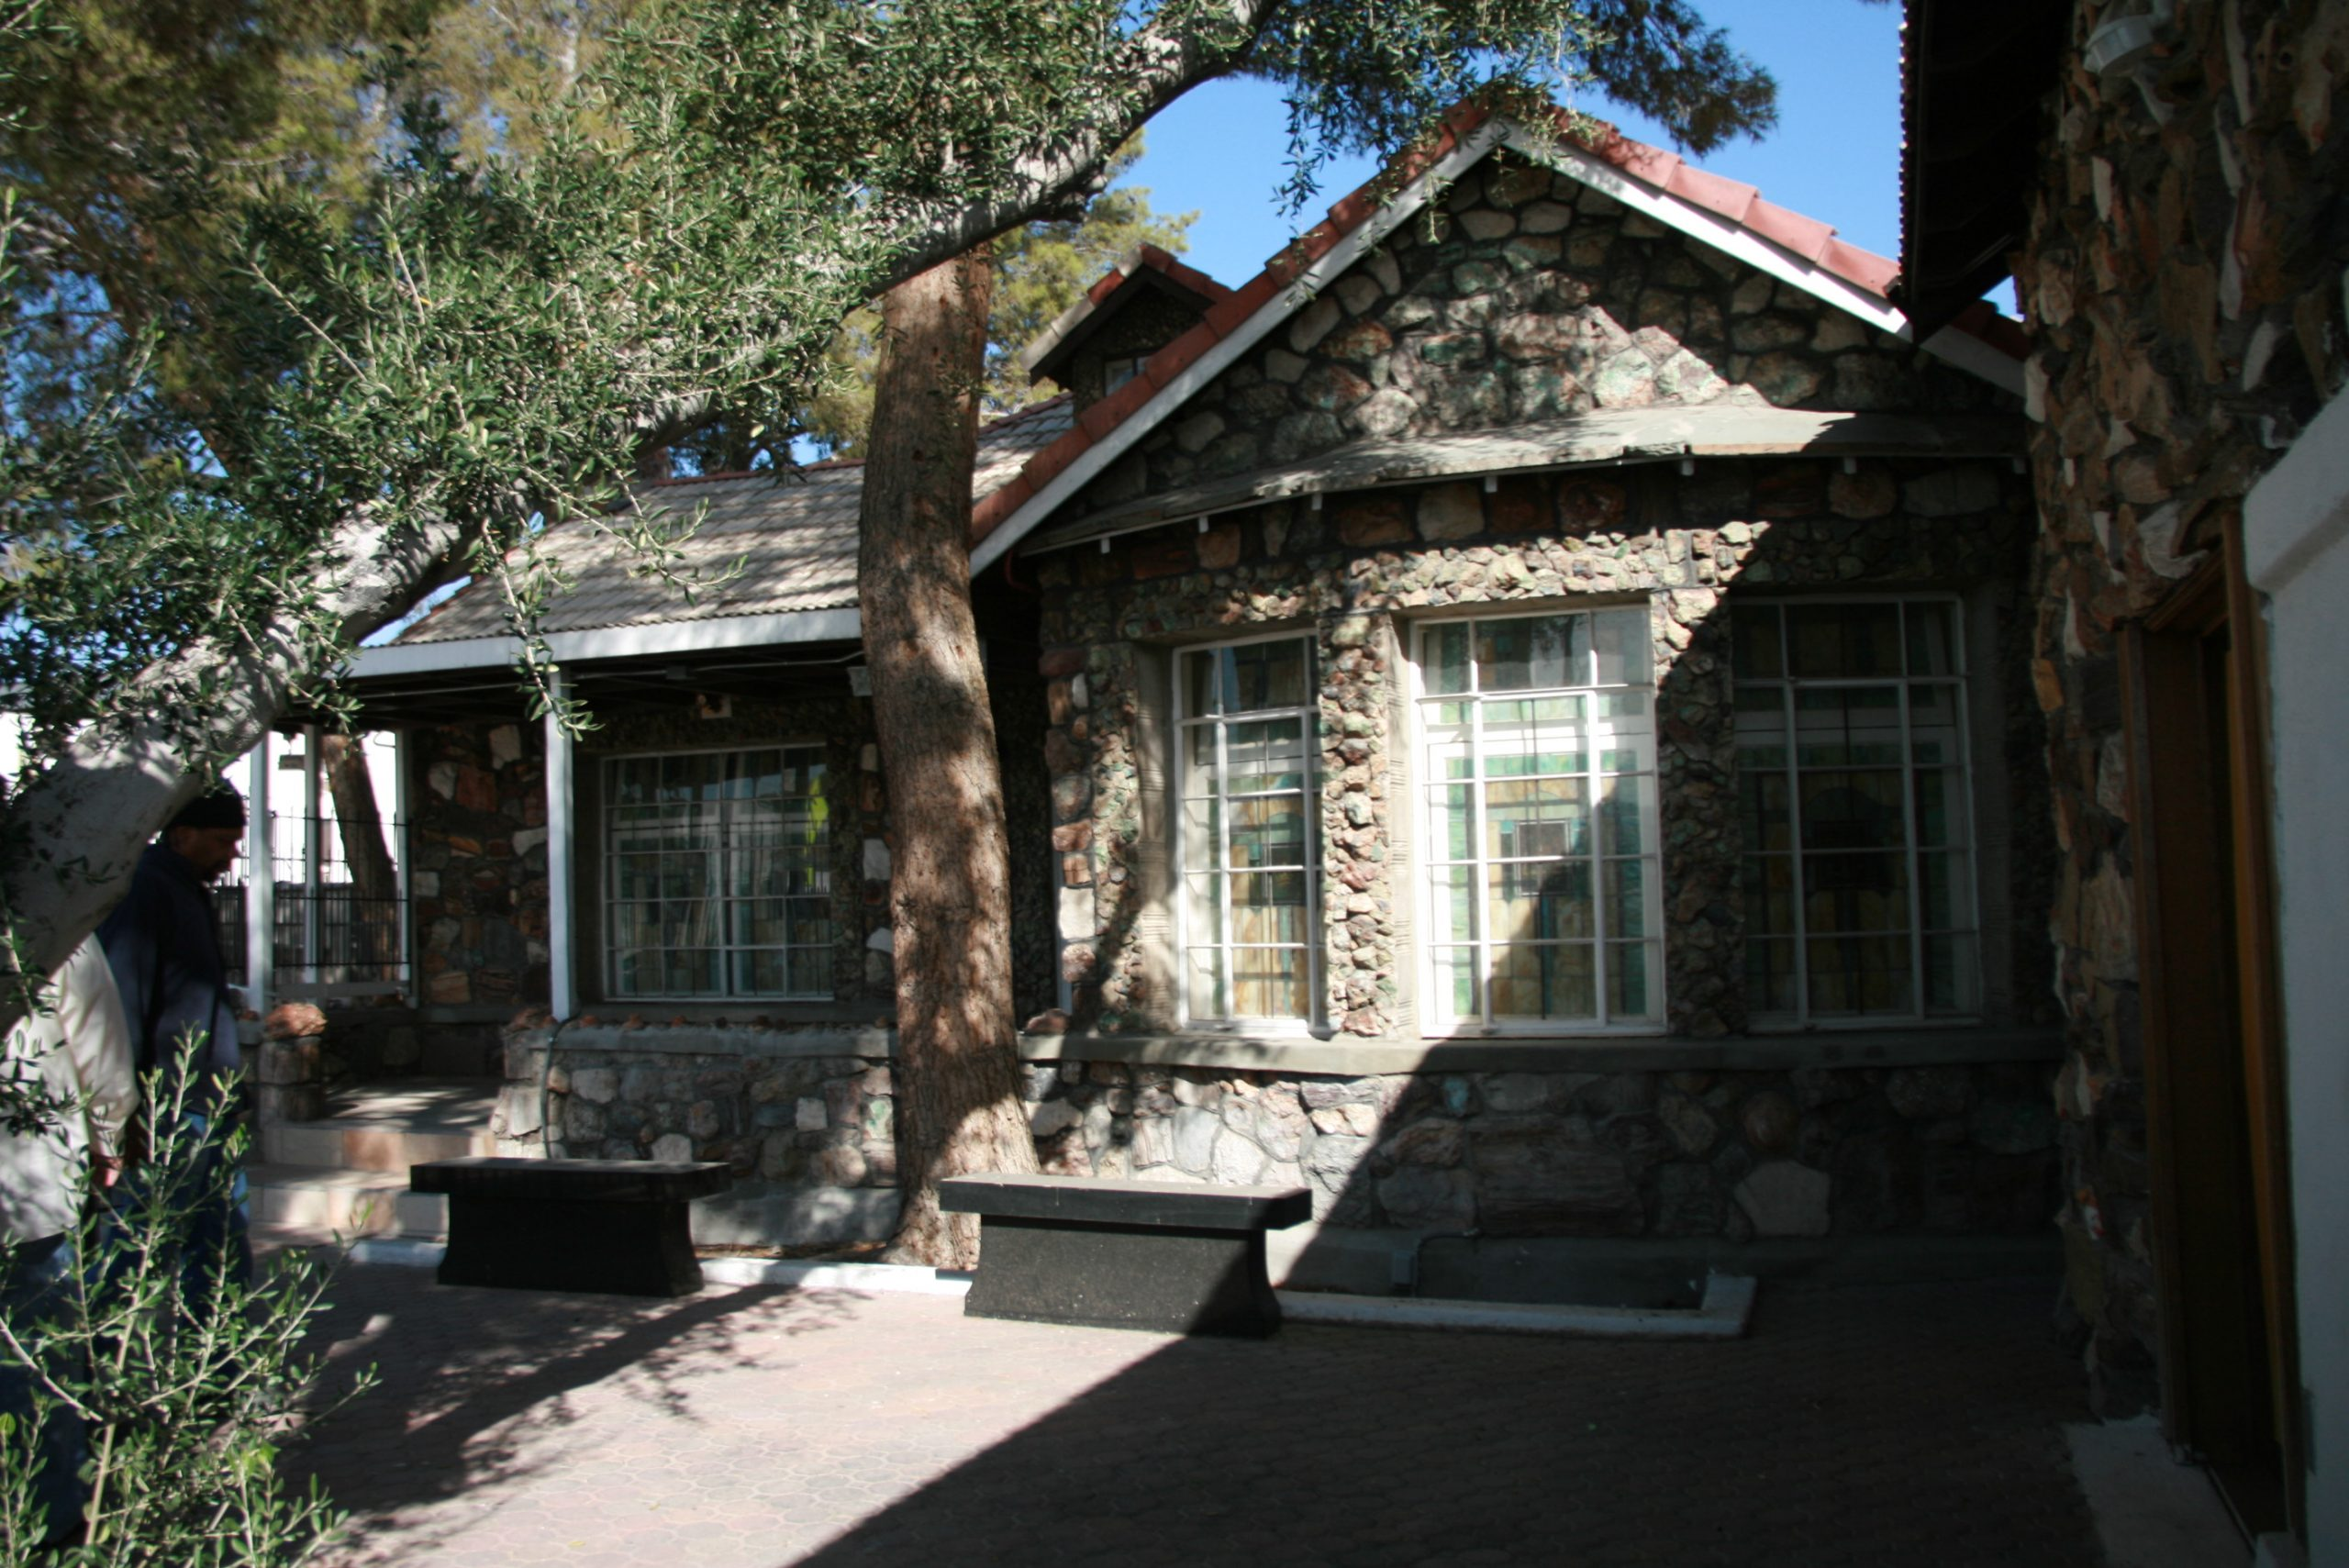 900 Ogden - Historic home in Las Vegas - LasVegasRealEstate.com